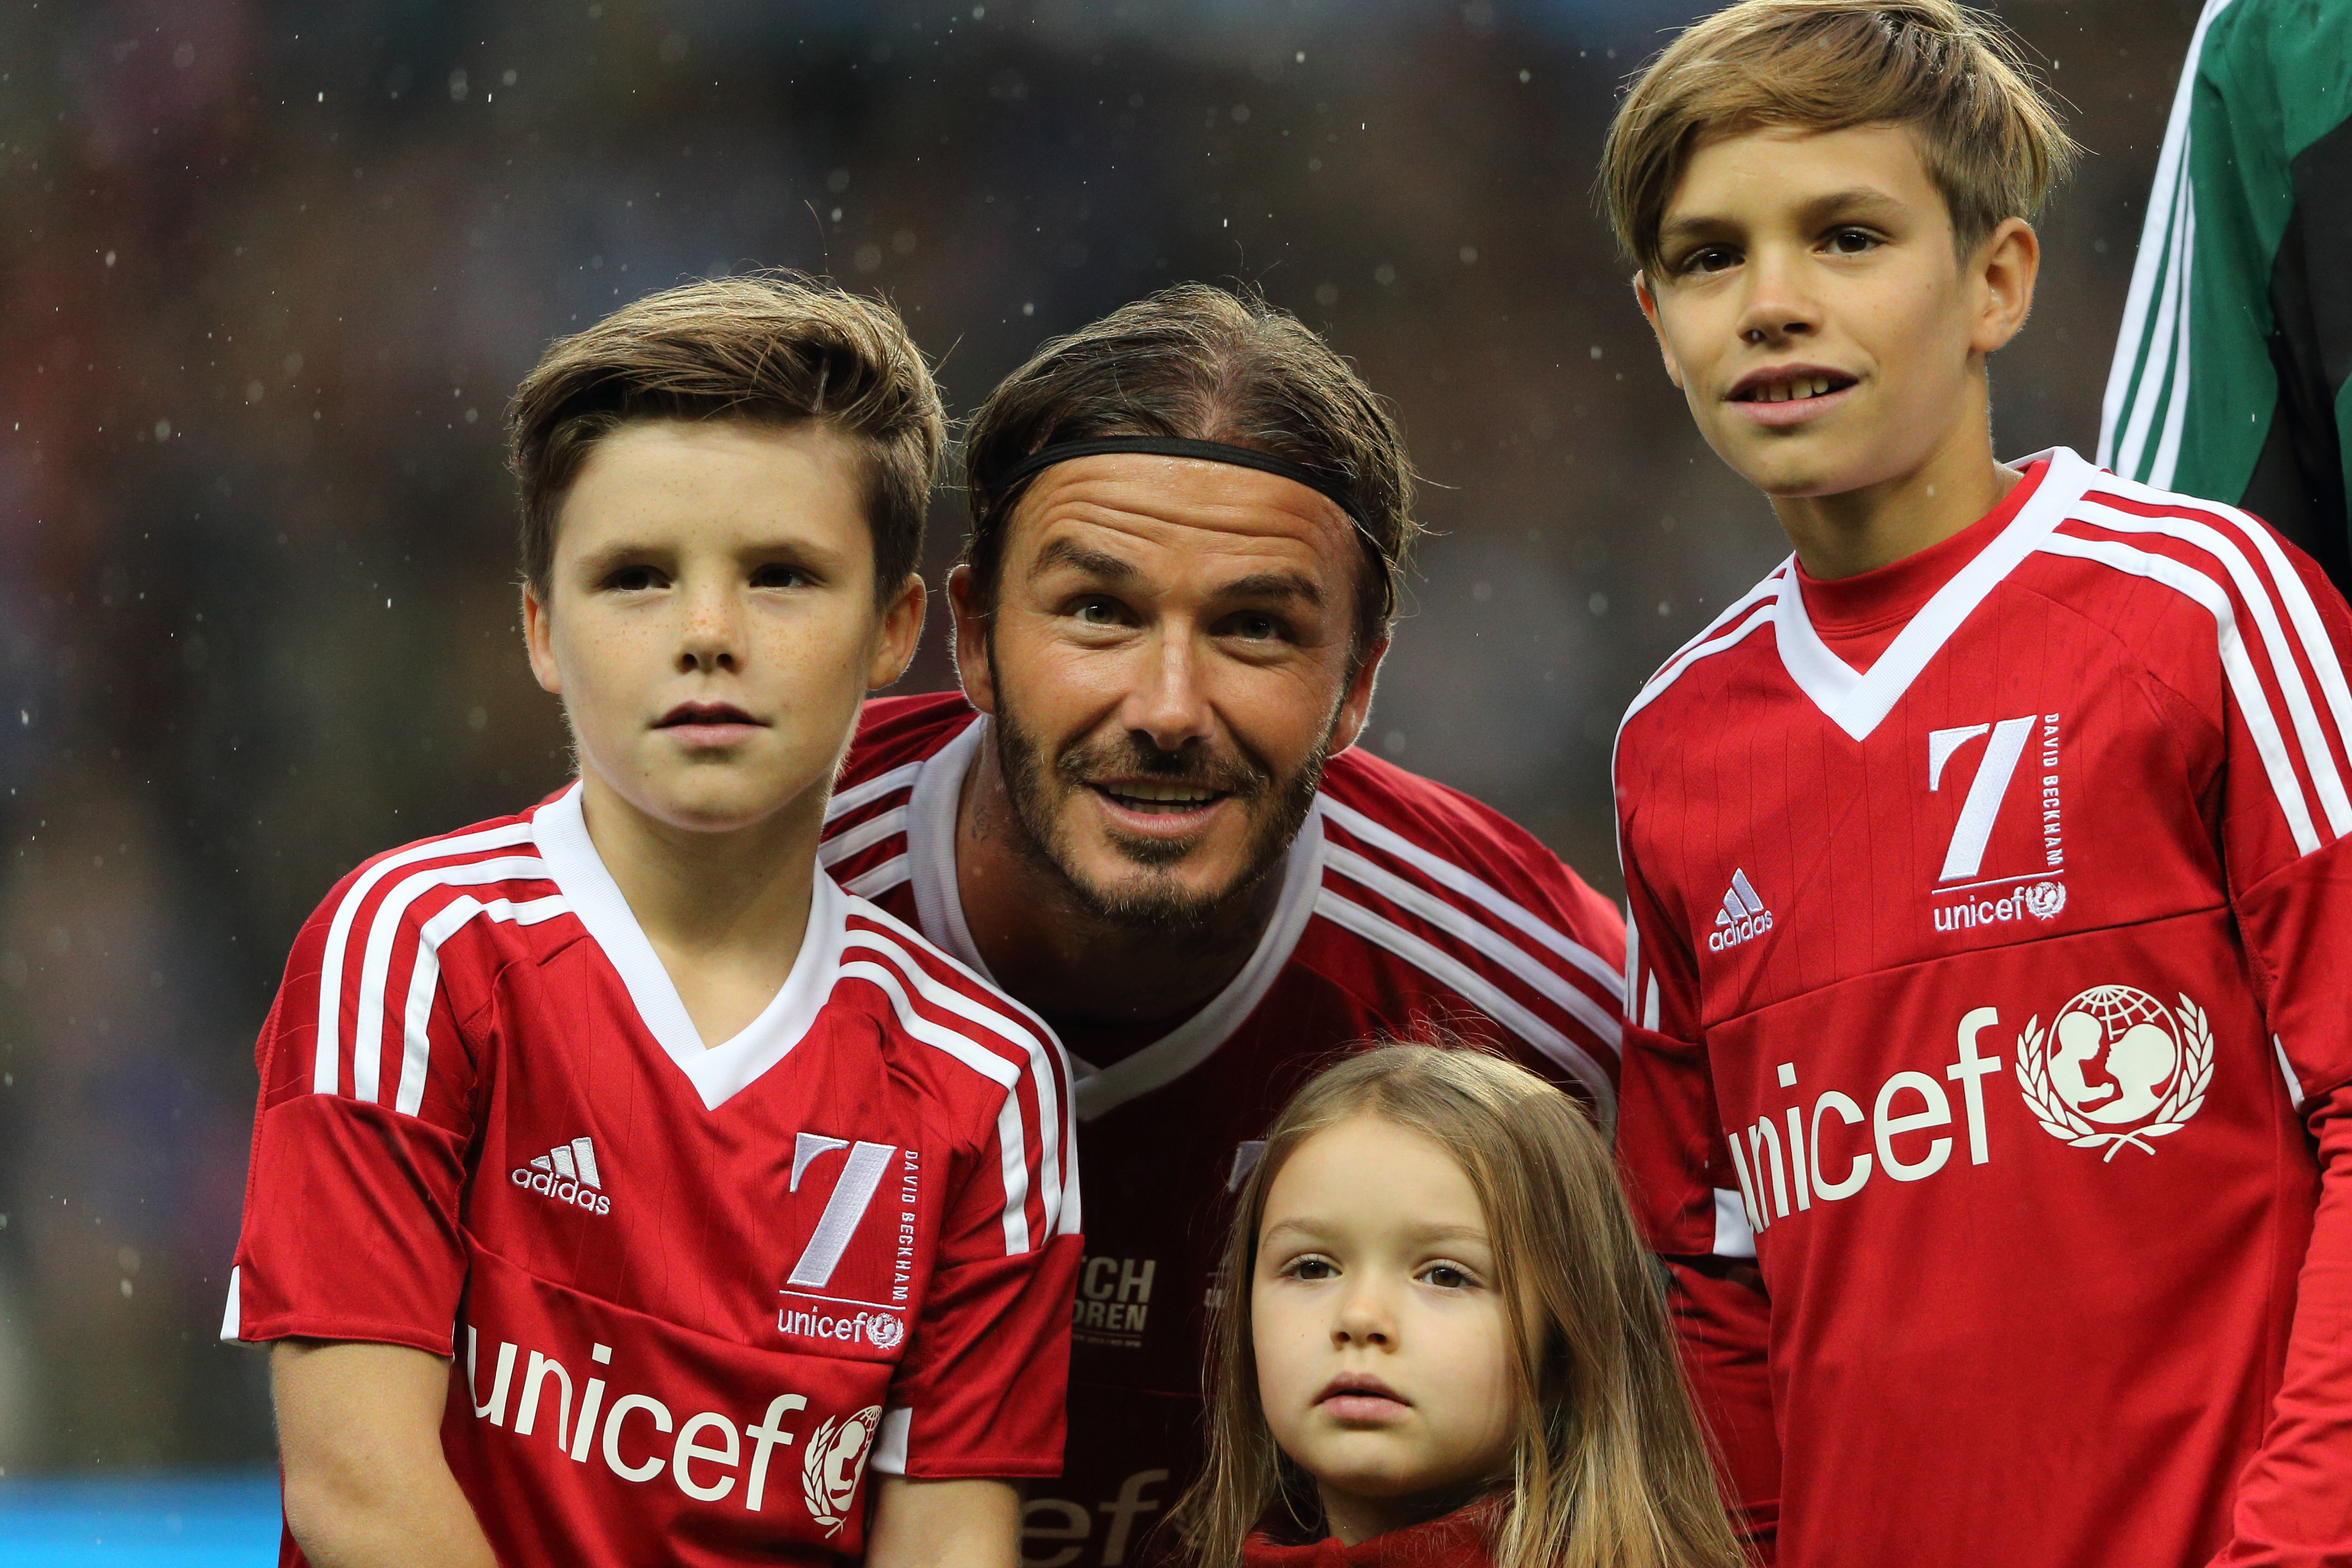 David Beckham on public scrutiny: 'You have to pick your battles'